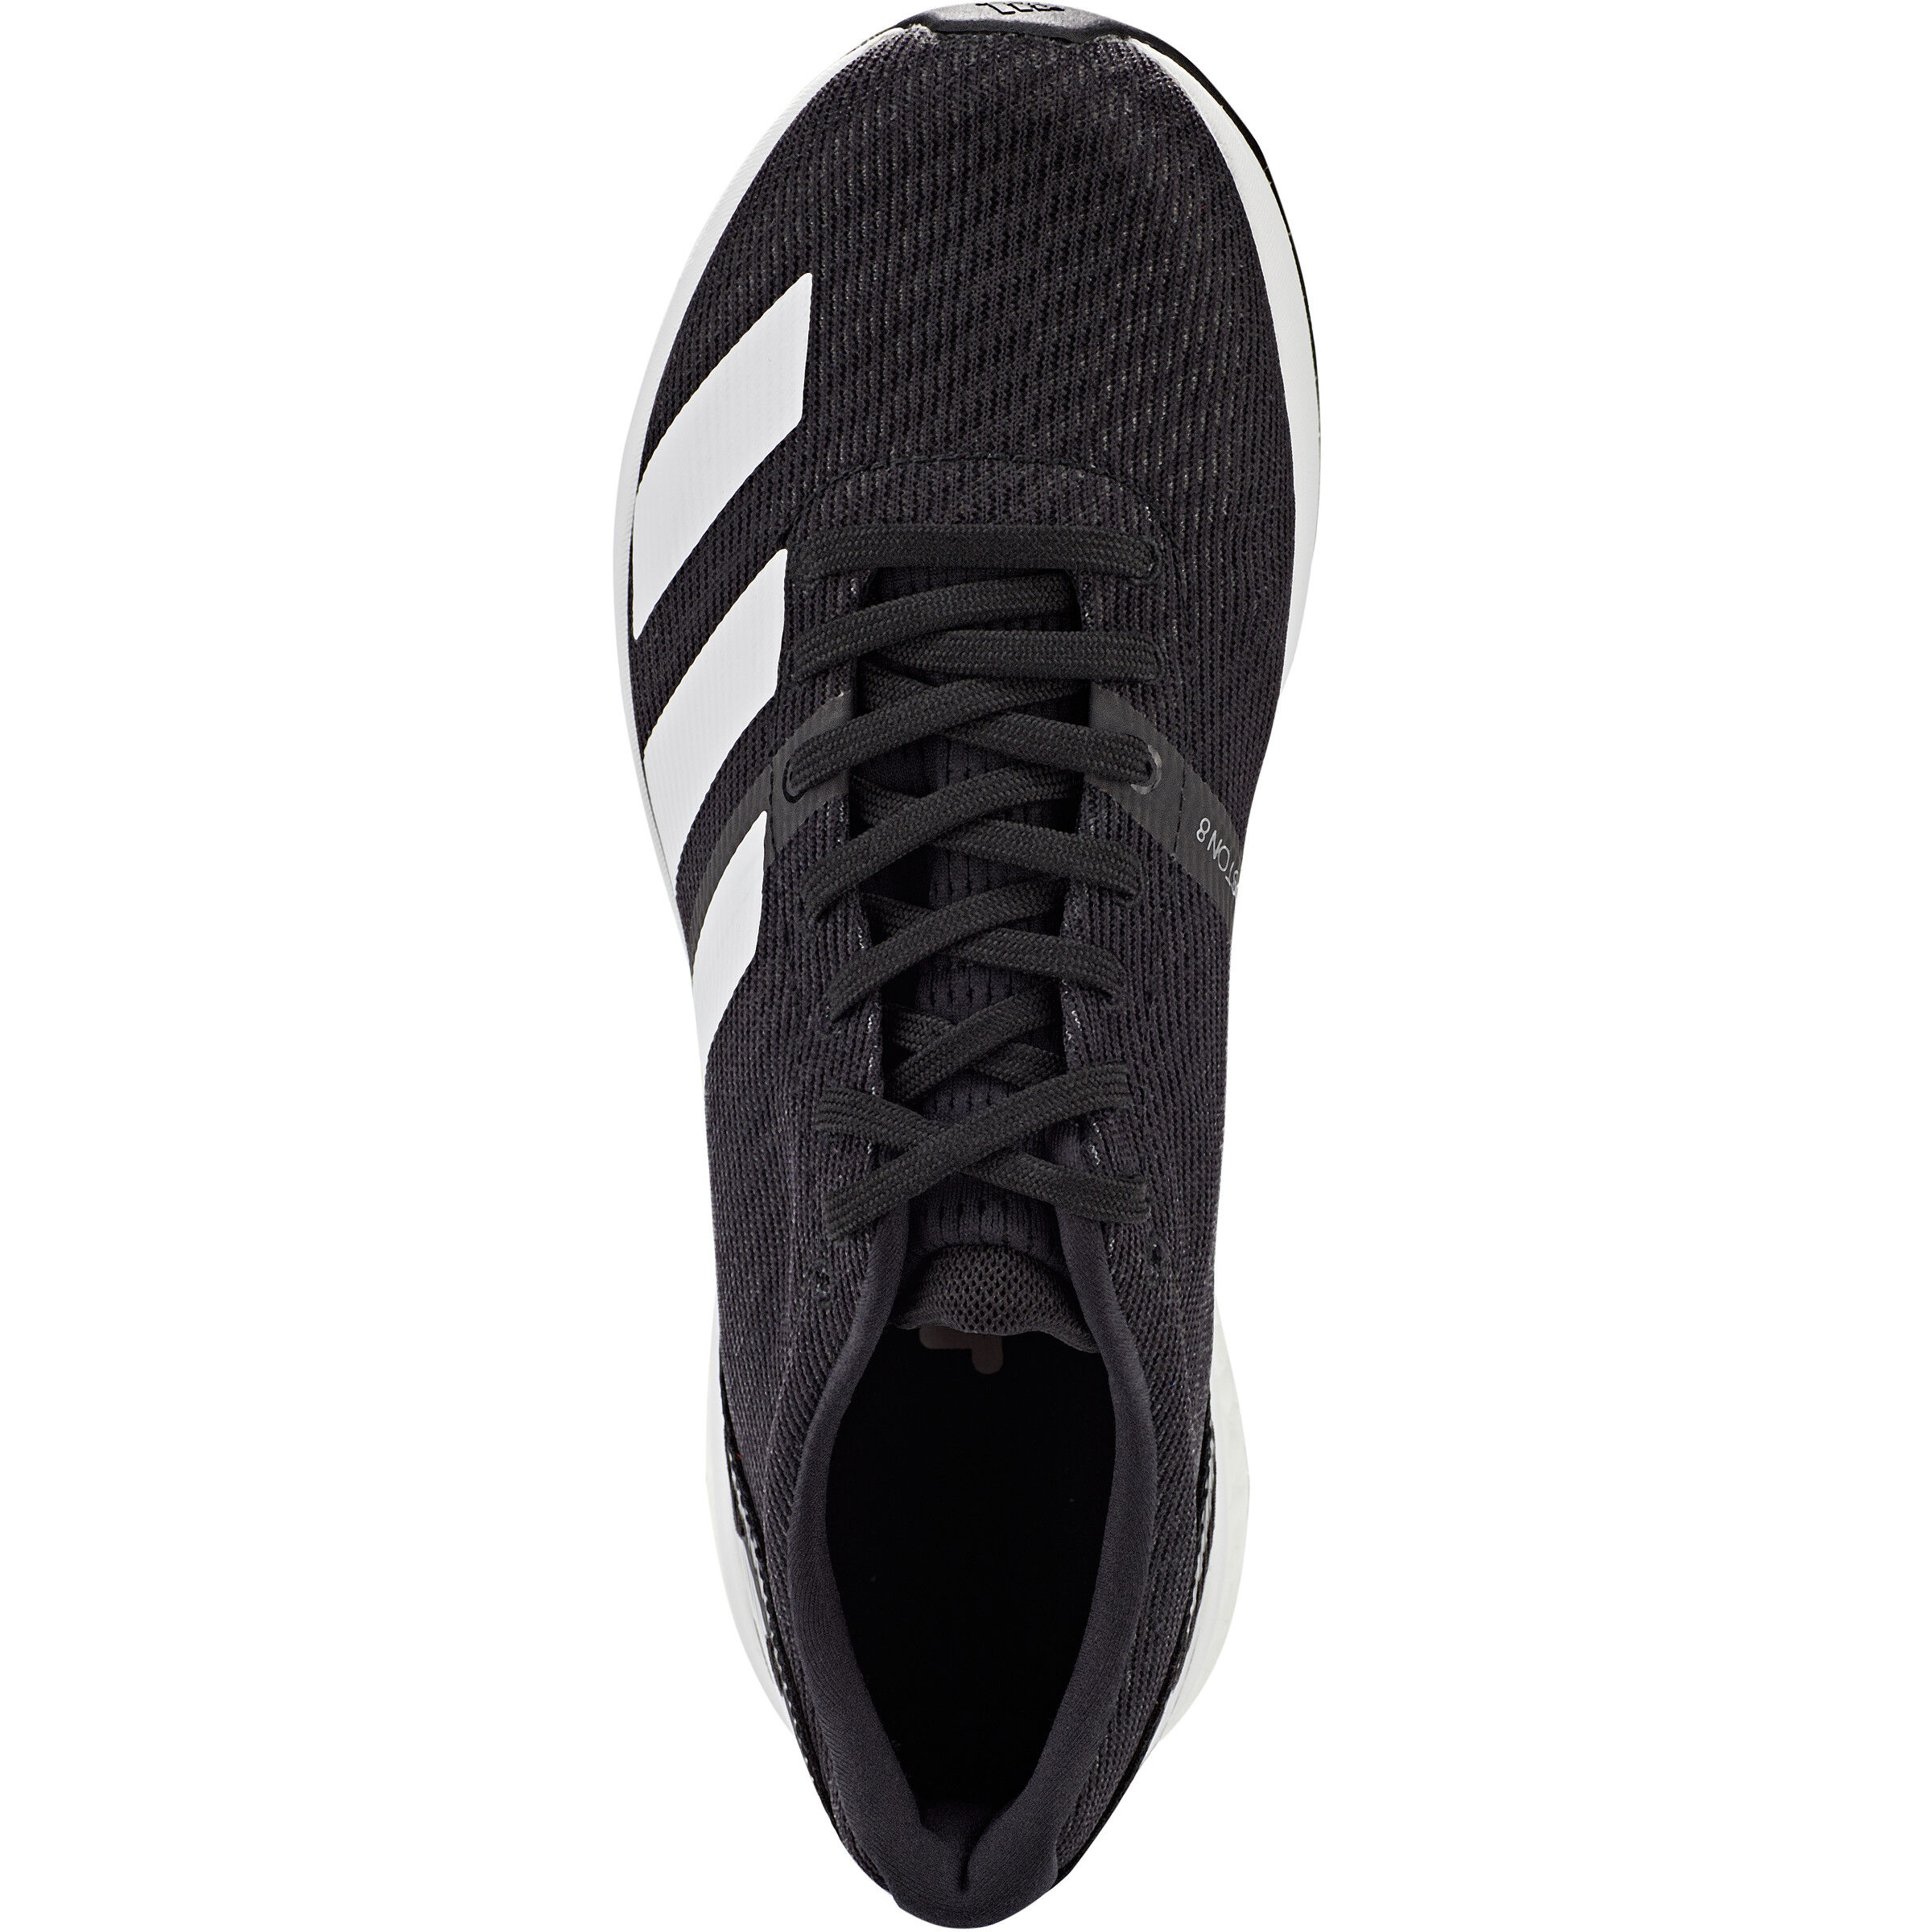 adidas Adizero Boston 8 Low Cut Schuhe Herren core blackfootwear whitegrey six